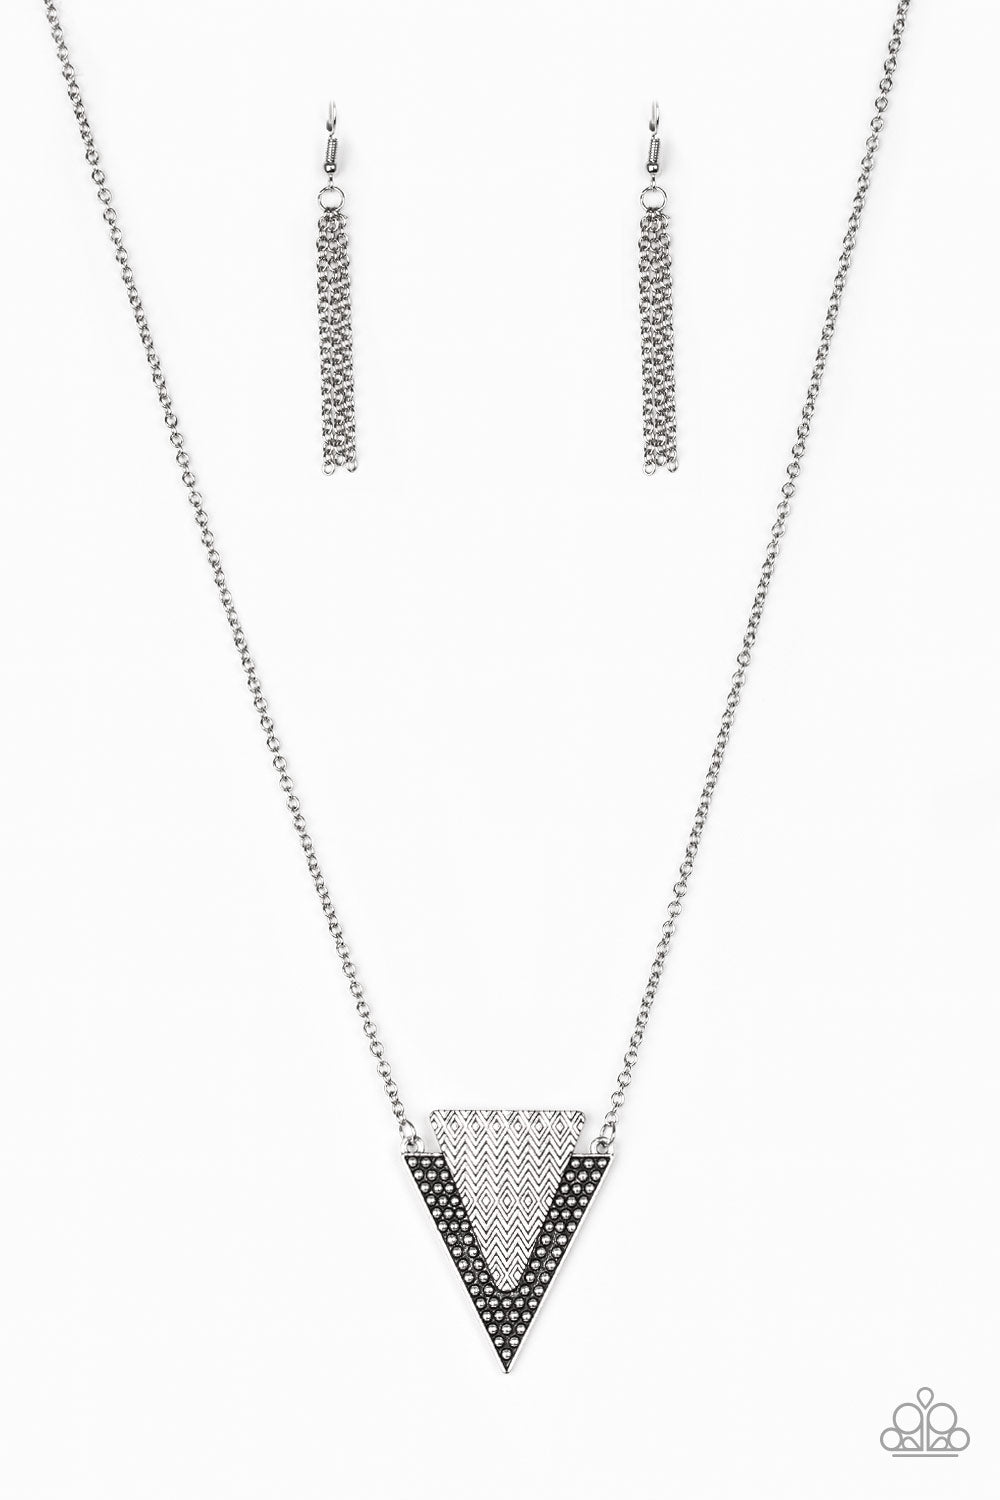 Paparazzi Accessories - Ancient Arrow - Silver Necklace Set - JMJ Jewelry Collection